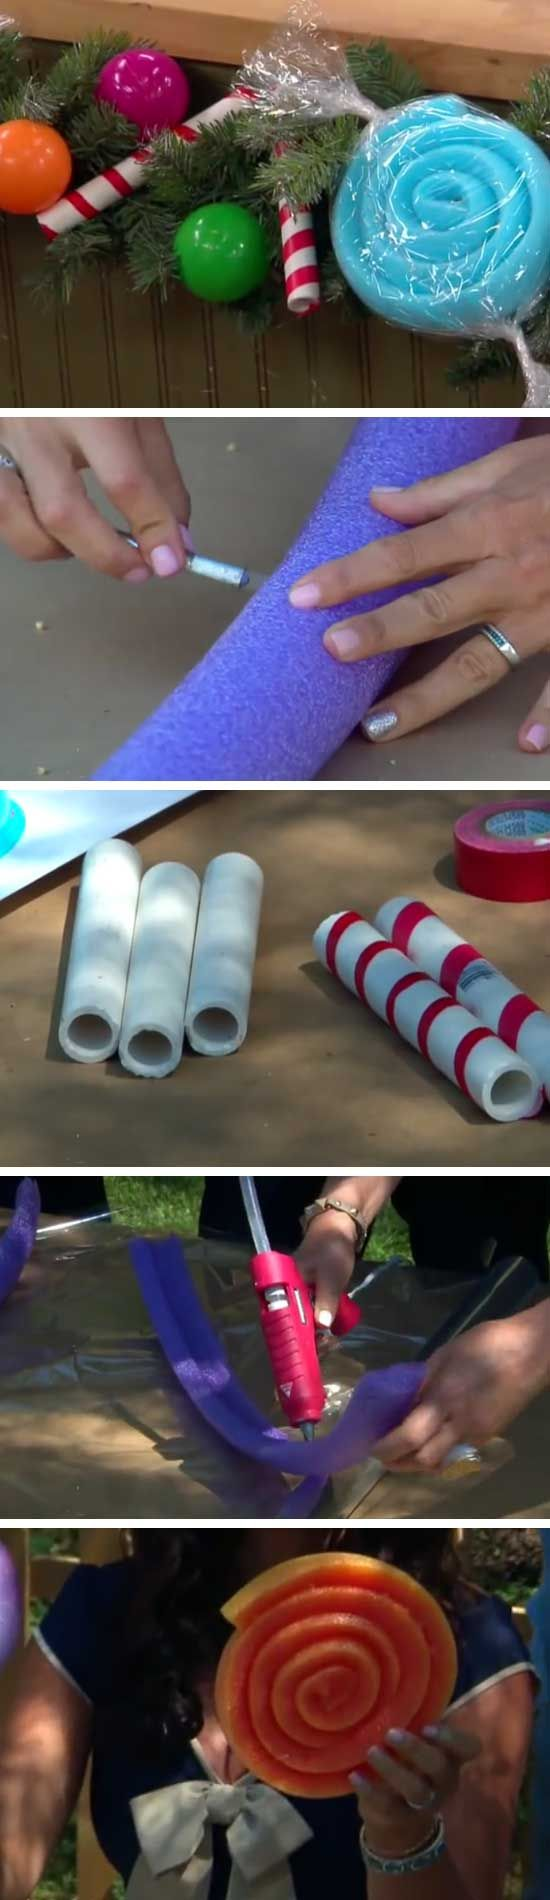 How to make a candy garland for Christmas with pool noodles, PVC pies, and other easy to find items!